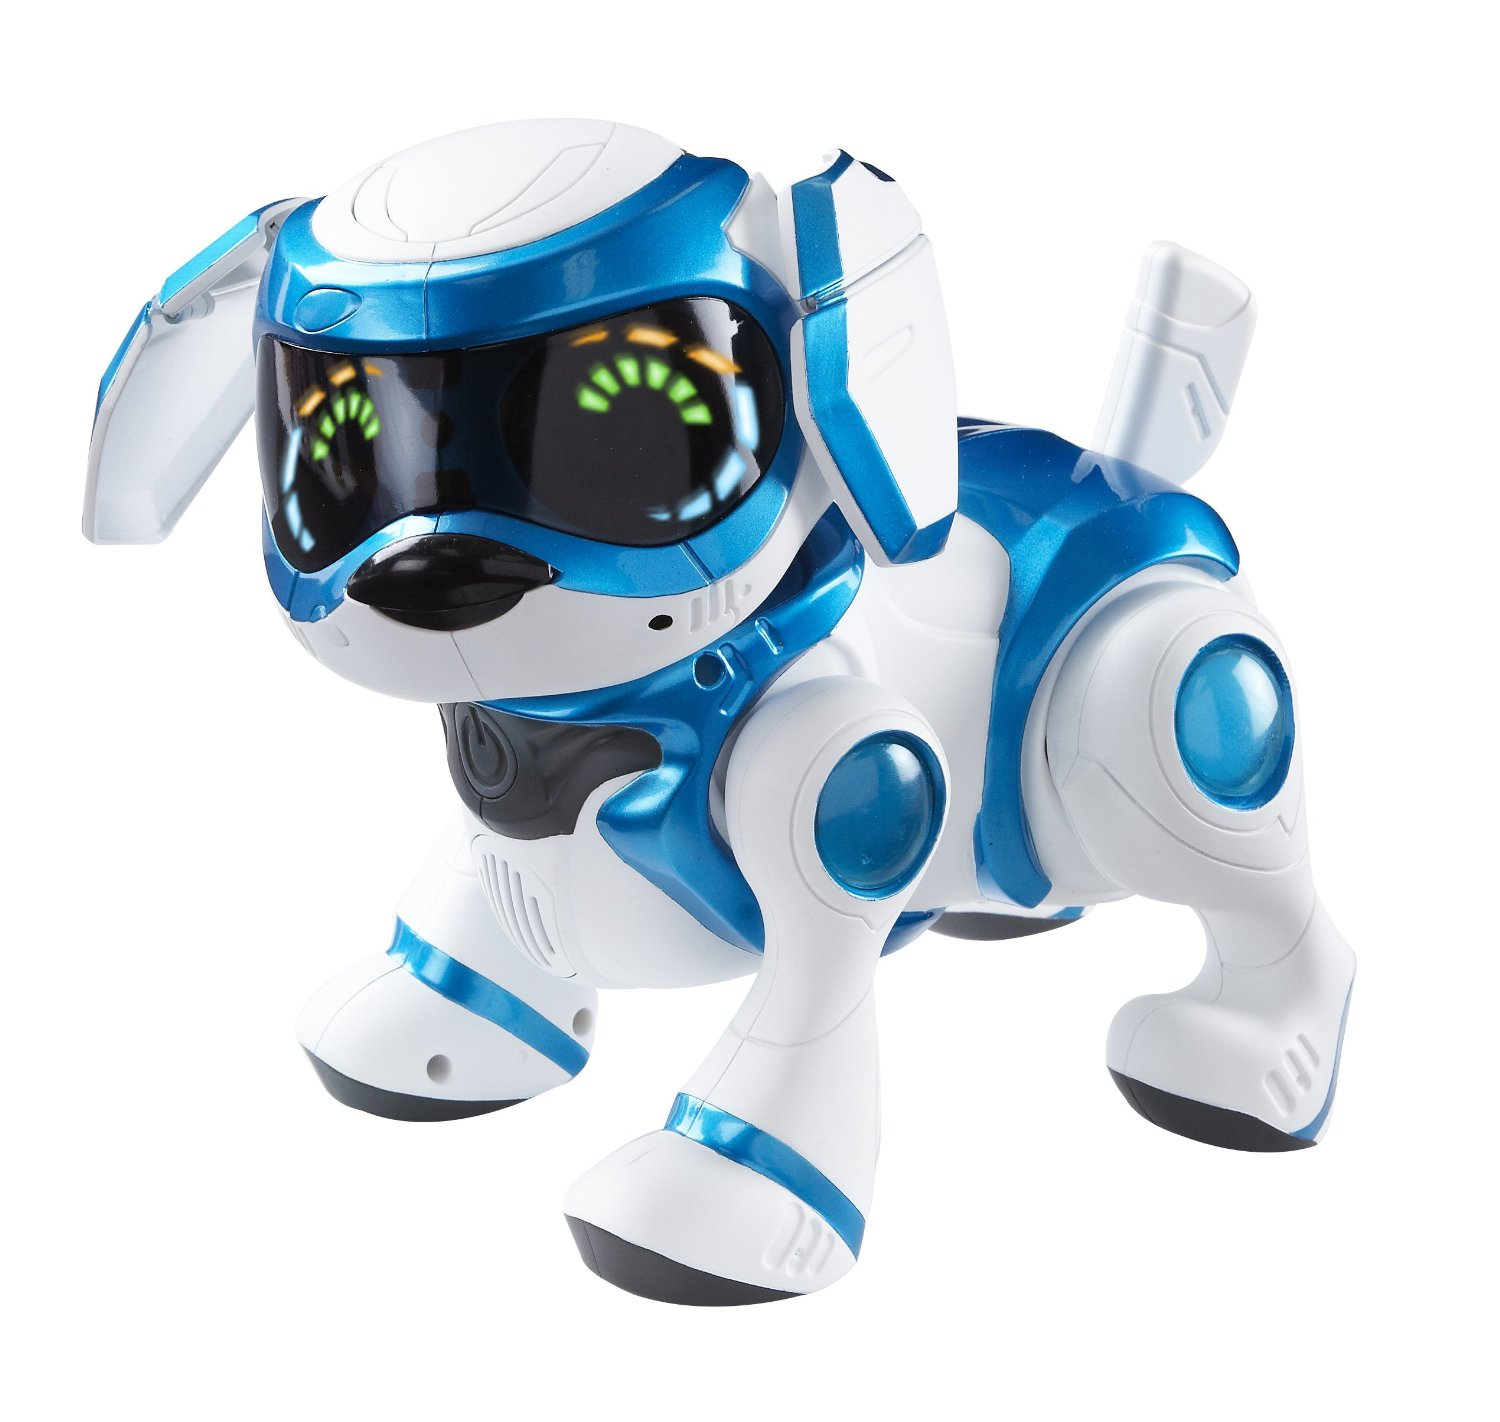 robot Top Selling Christmas Gifts 2014